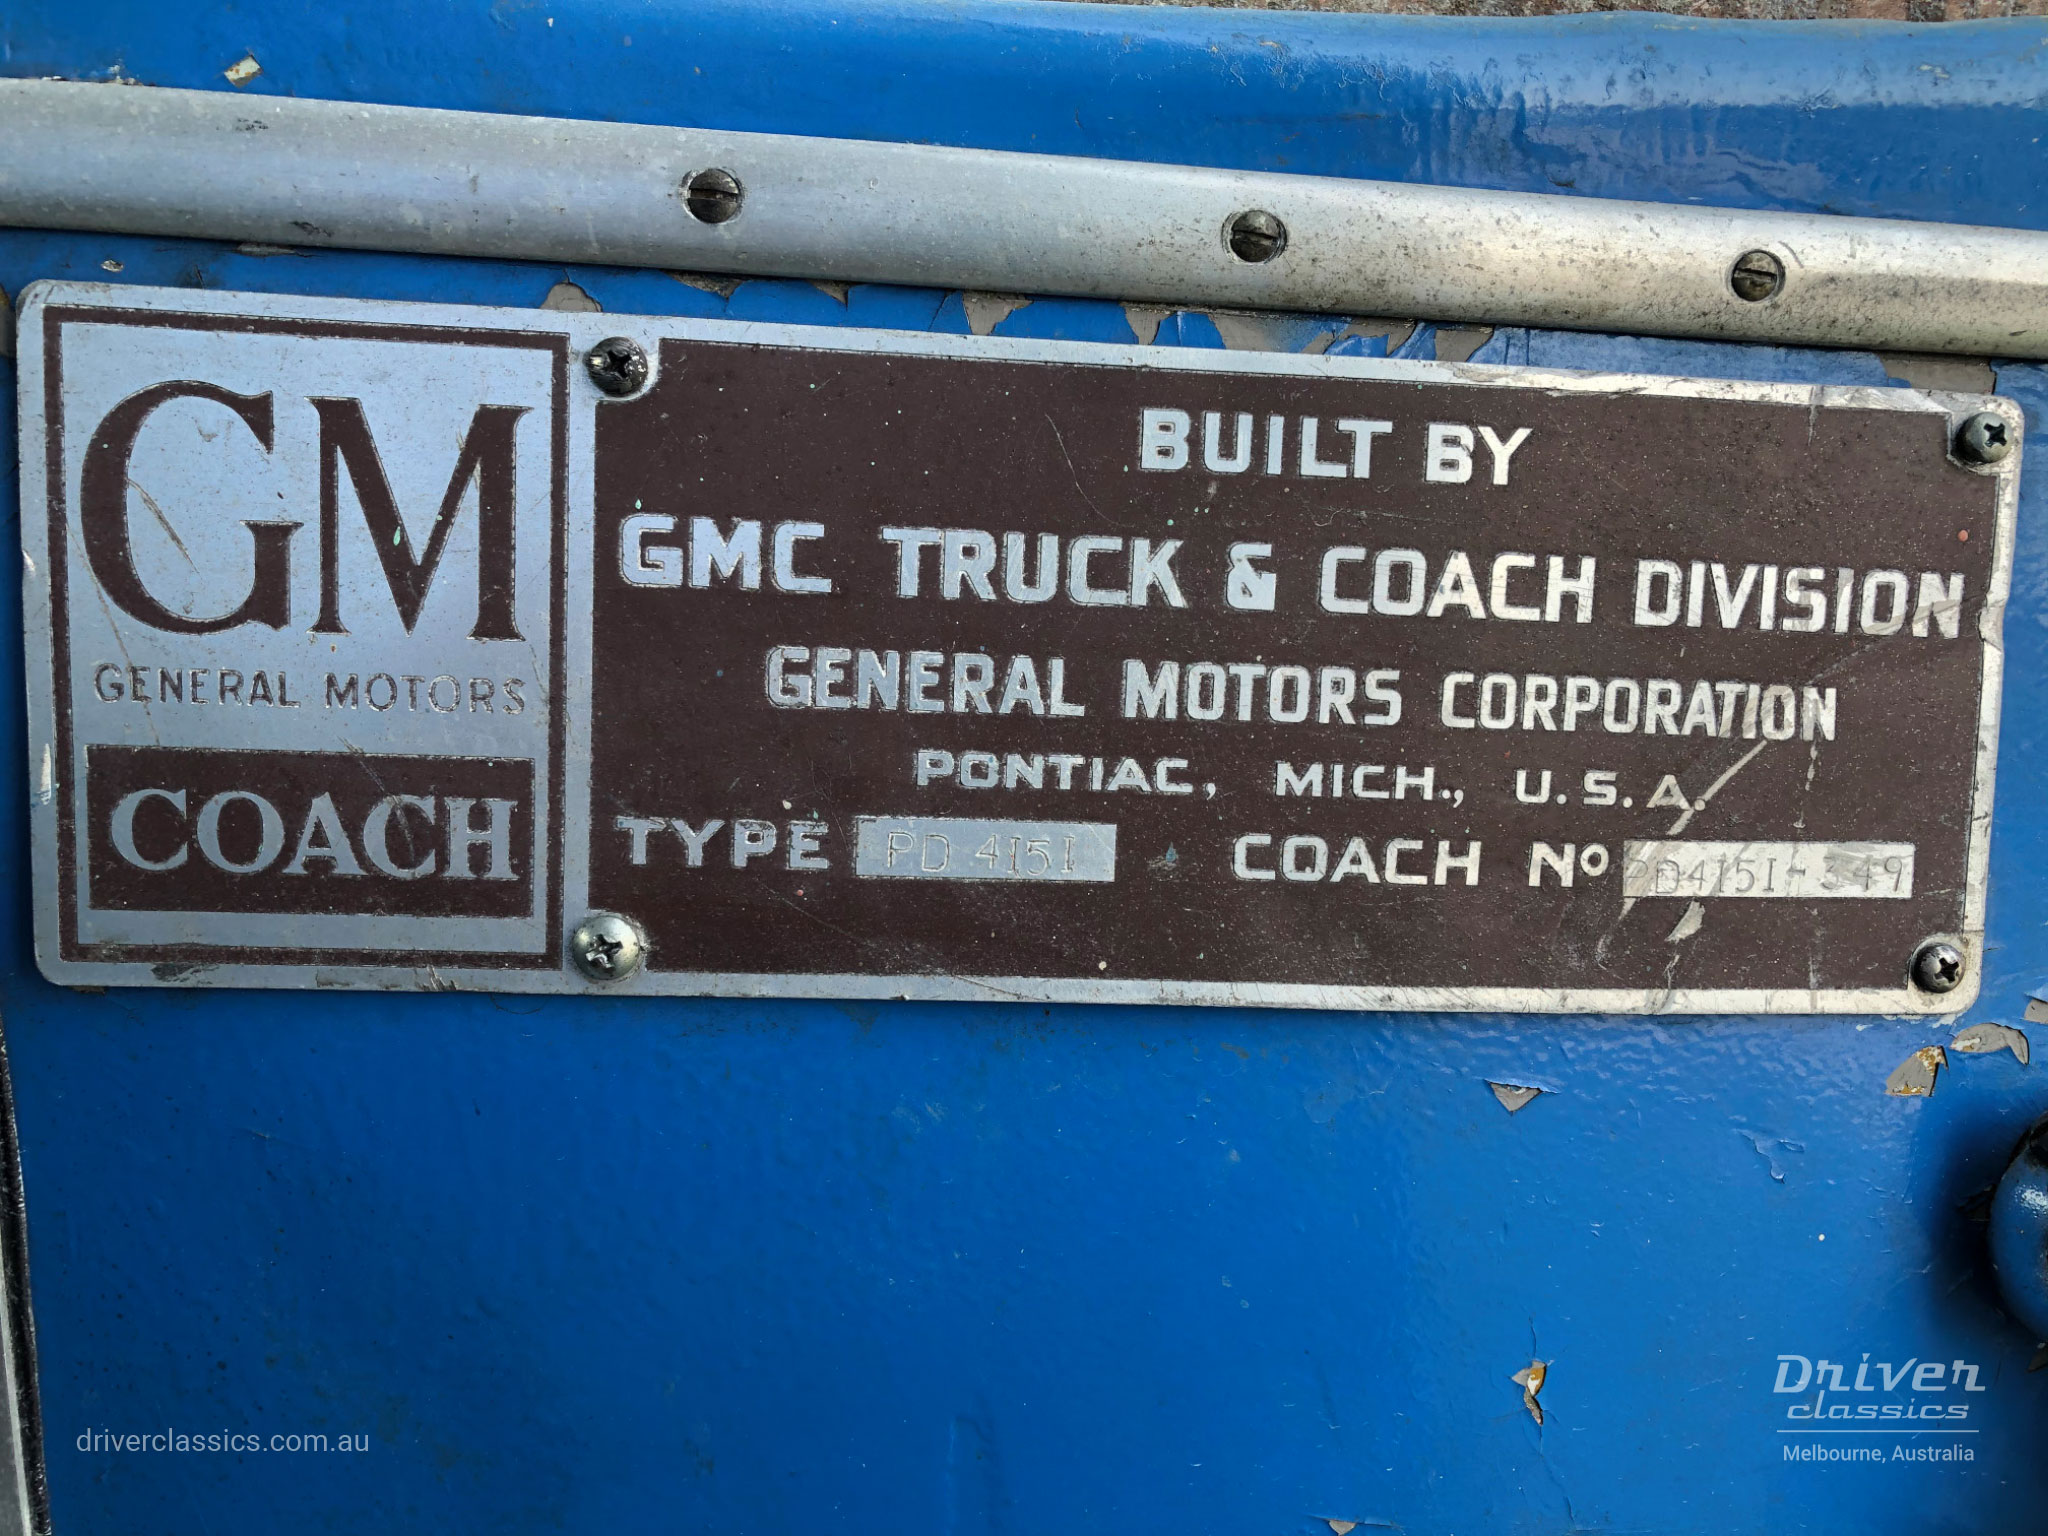 Manufacturers plate on GM PD-4151 Silversides, reads pd4151-349 1948 model, Photo taken April 2021